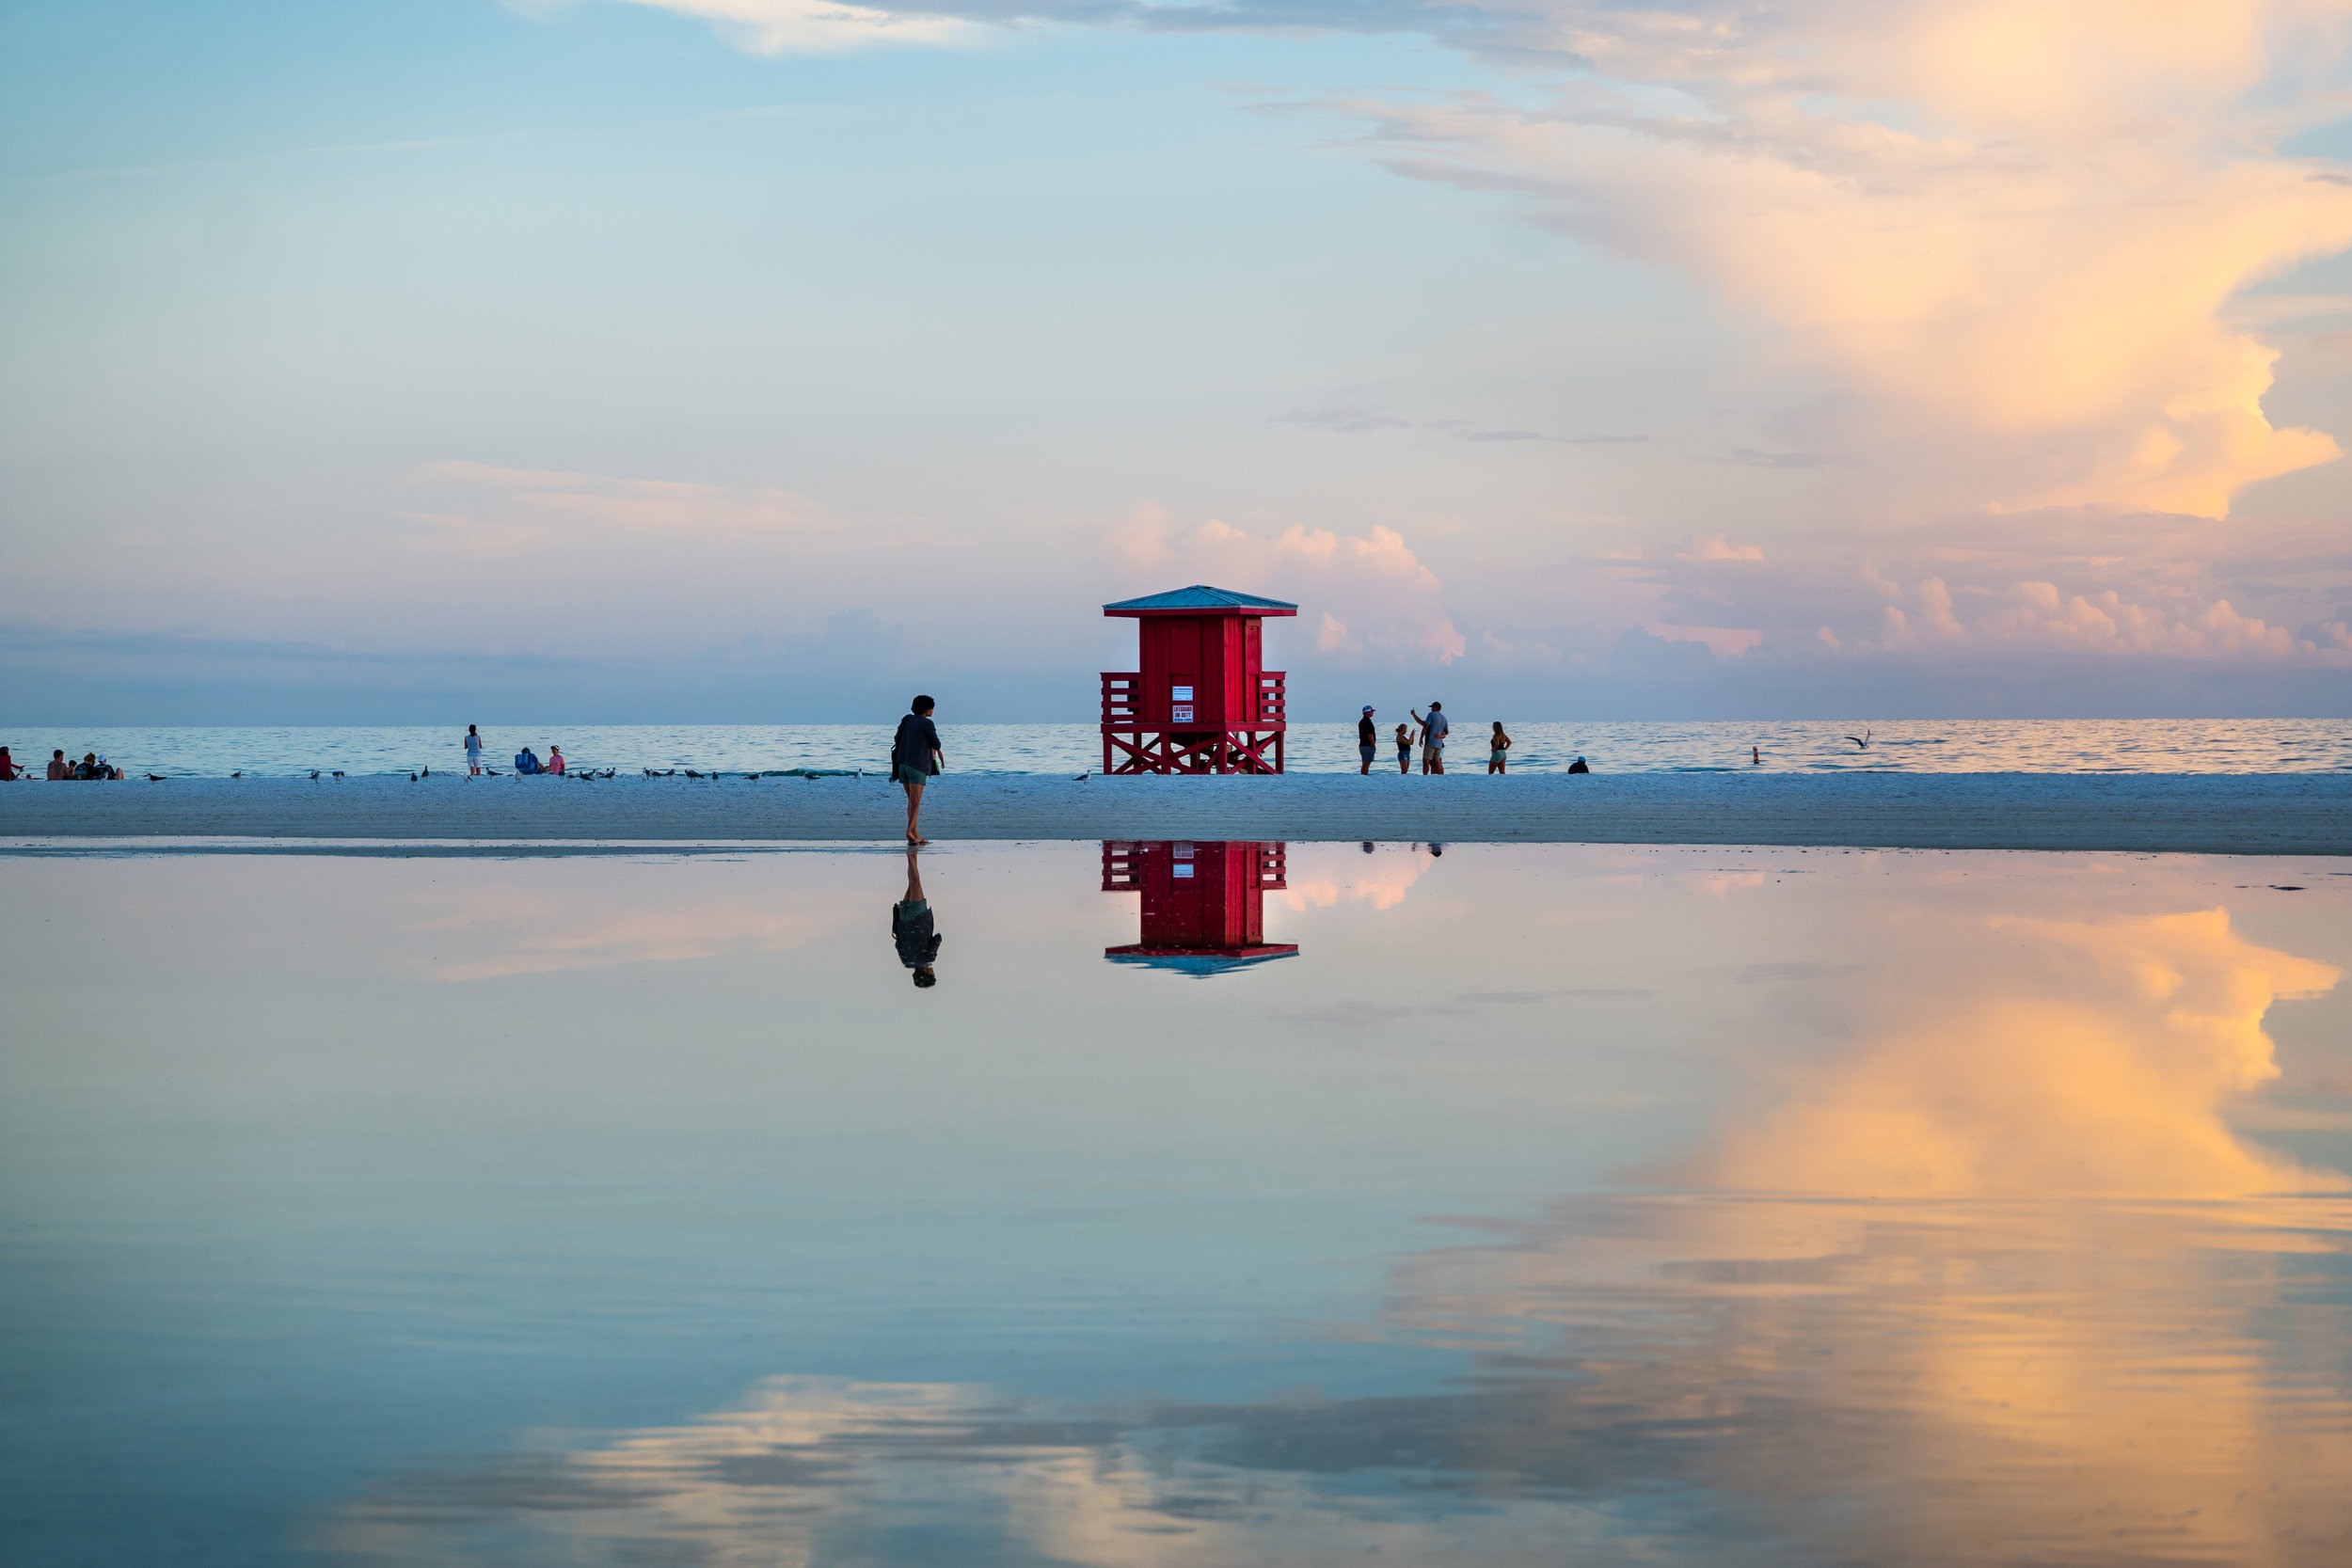 Sarasota + Siesta Key, Florida - Avoid the tourist traps and live like a local in this beautiful, arts-centric coastal city